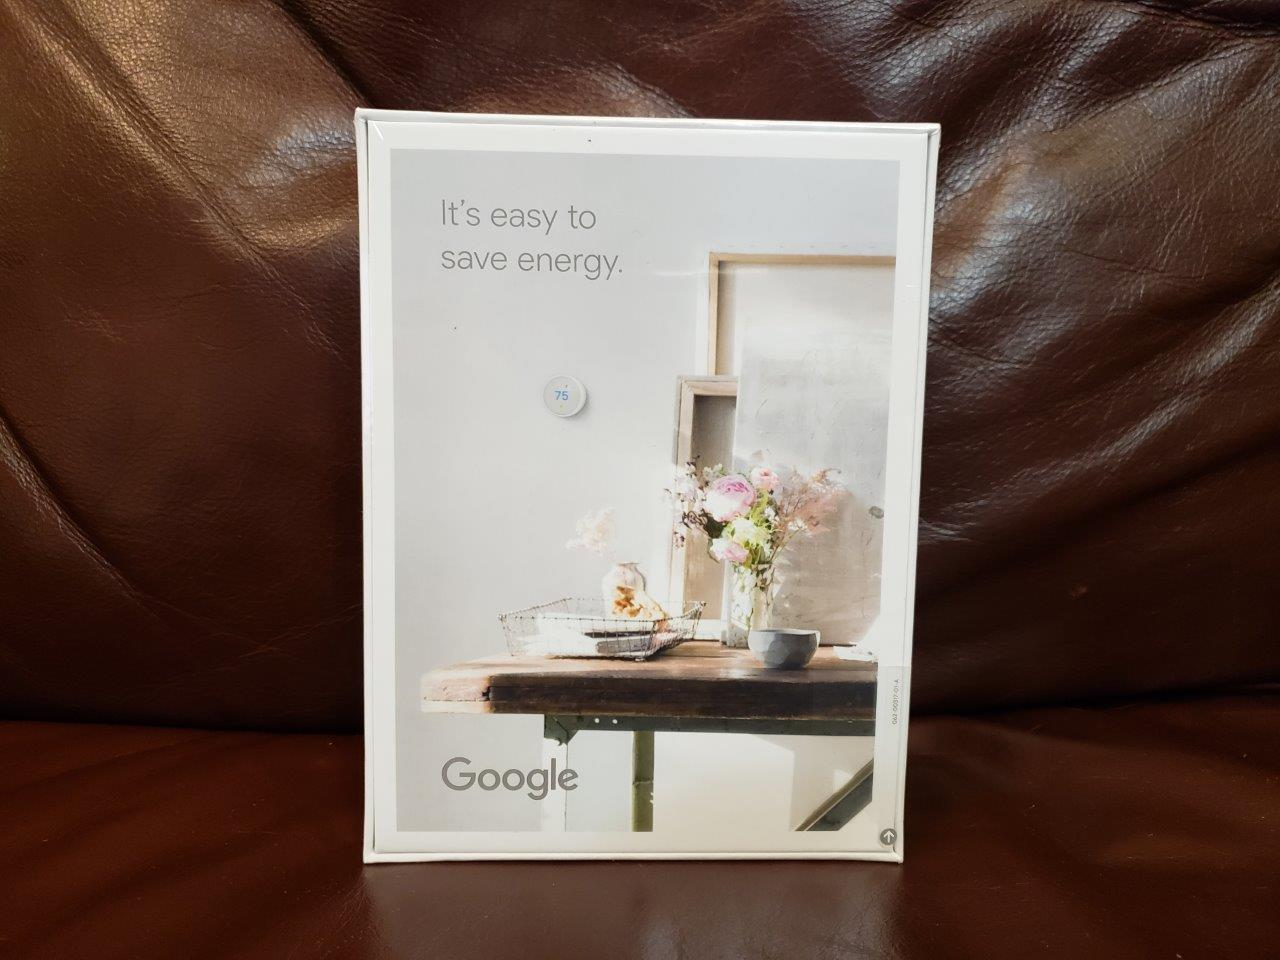 Google Nest Thermostat E in White, WiFi, New Factory Sealed